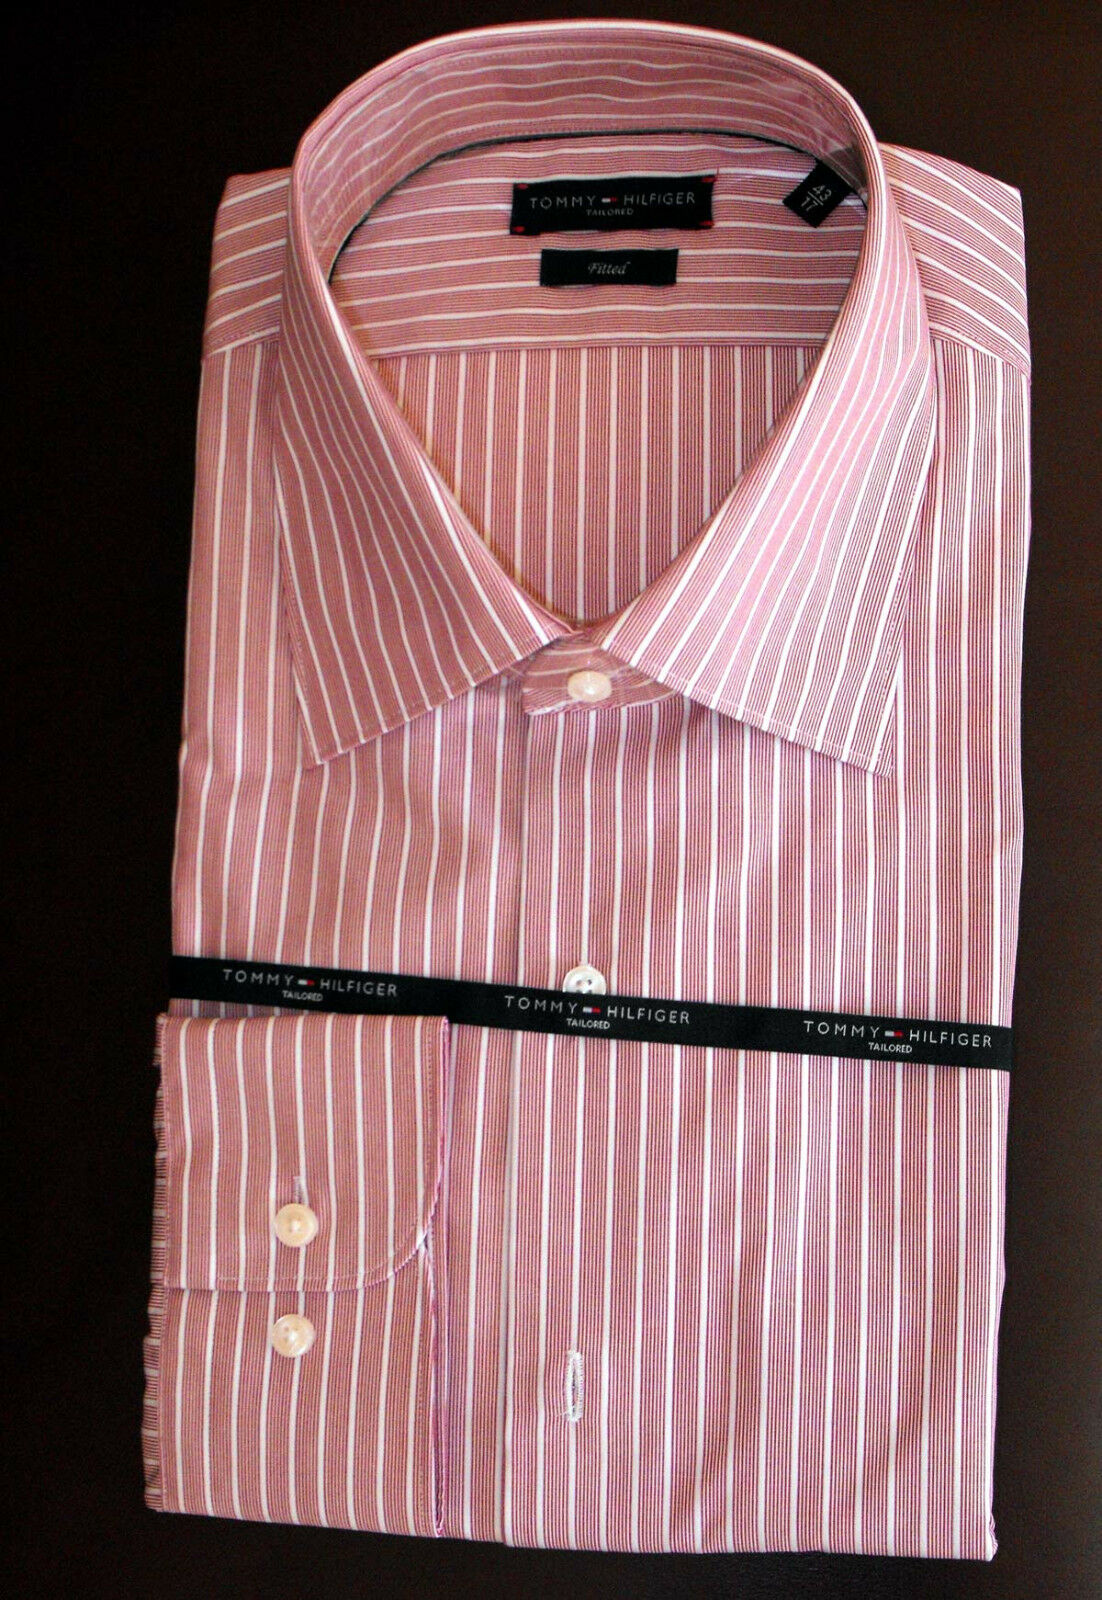 TOMMY HILFIGER TAILOROT FITTED SHIRT 17 / 43  BNWT